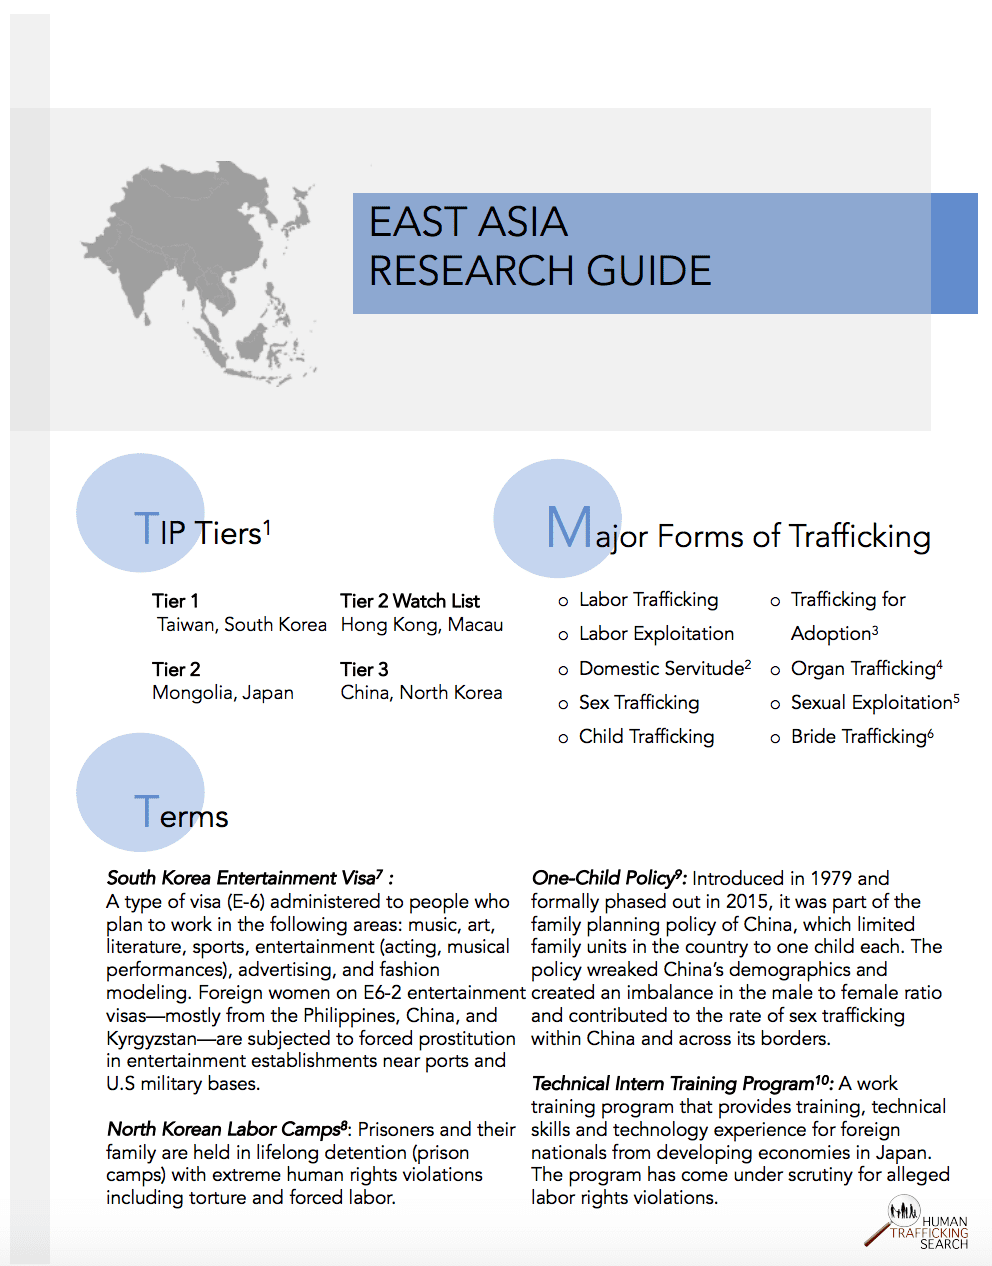 East Asia Research Guide, 2017